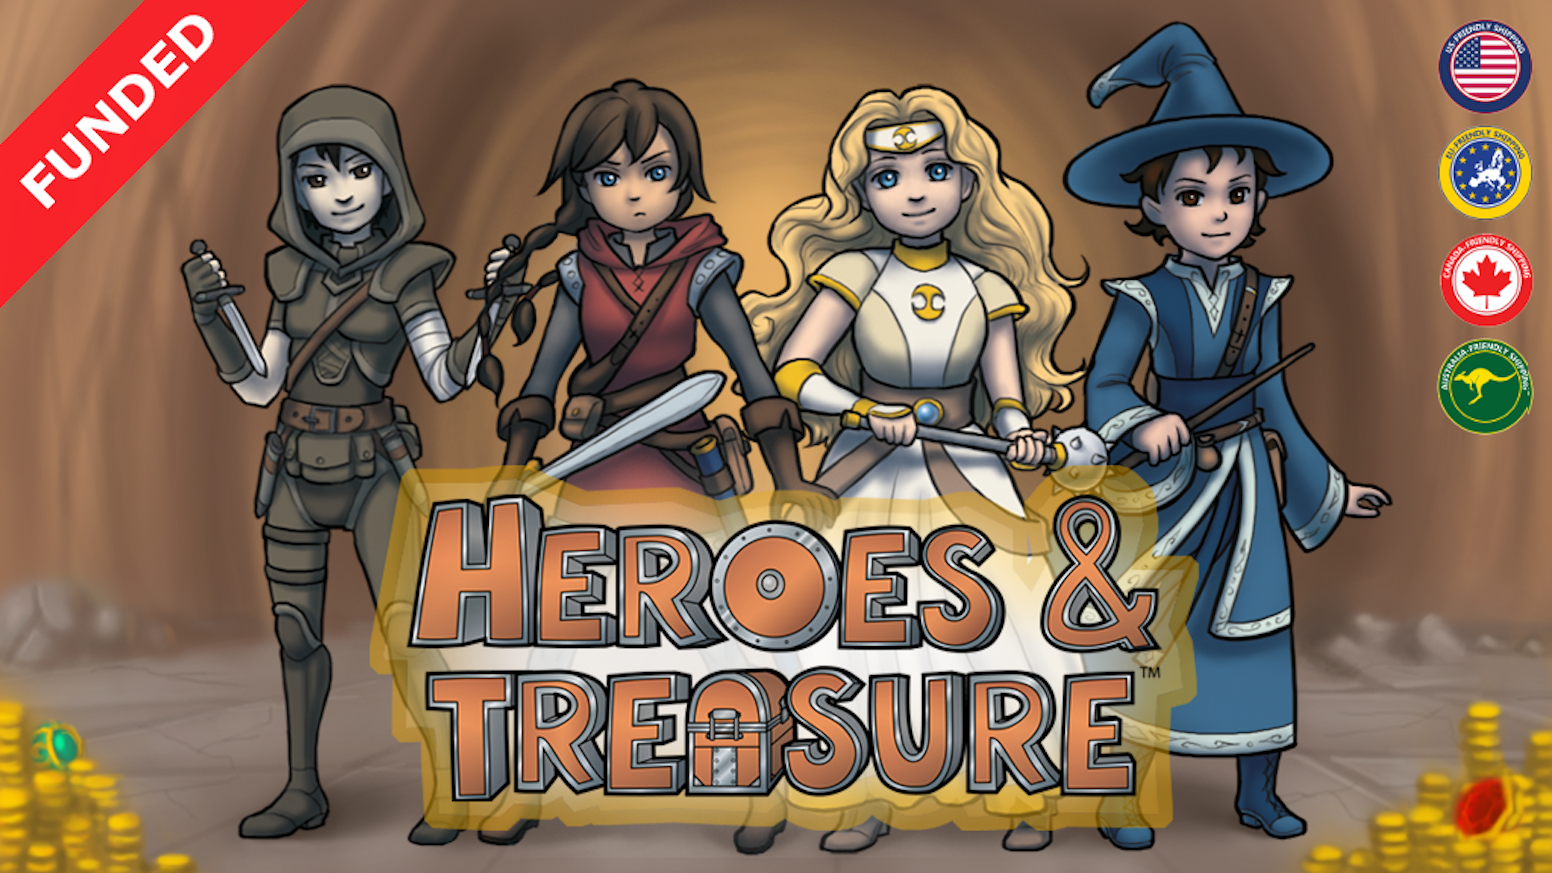 A family-friendly RPG board game for kids as young as 4 and their parents.